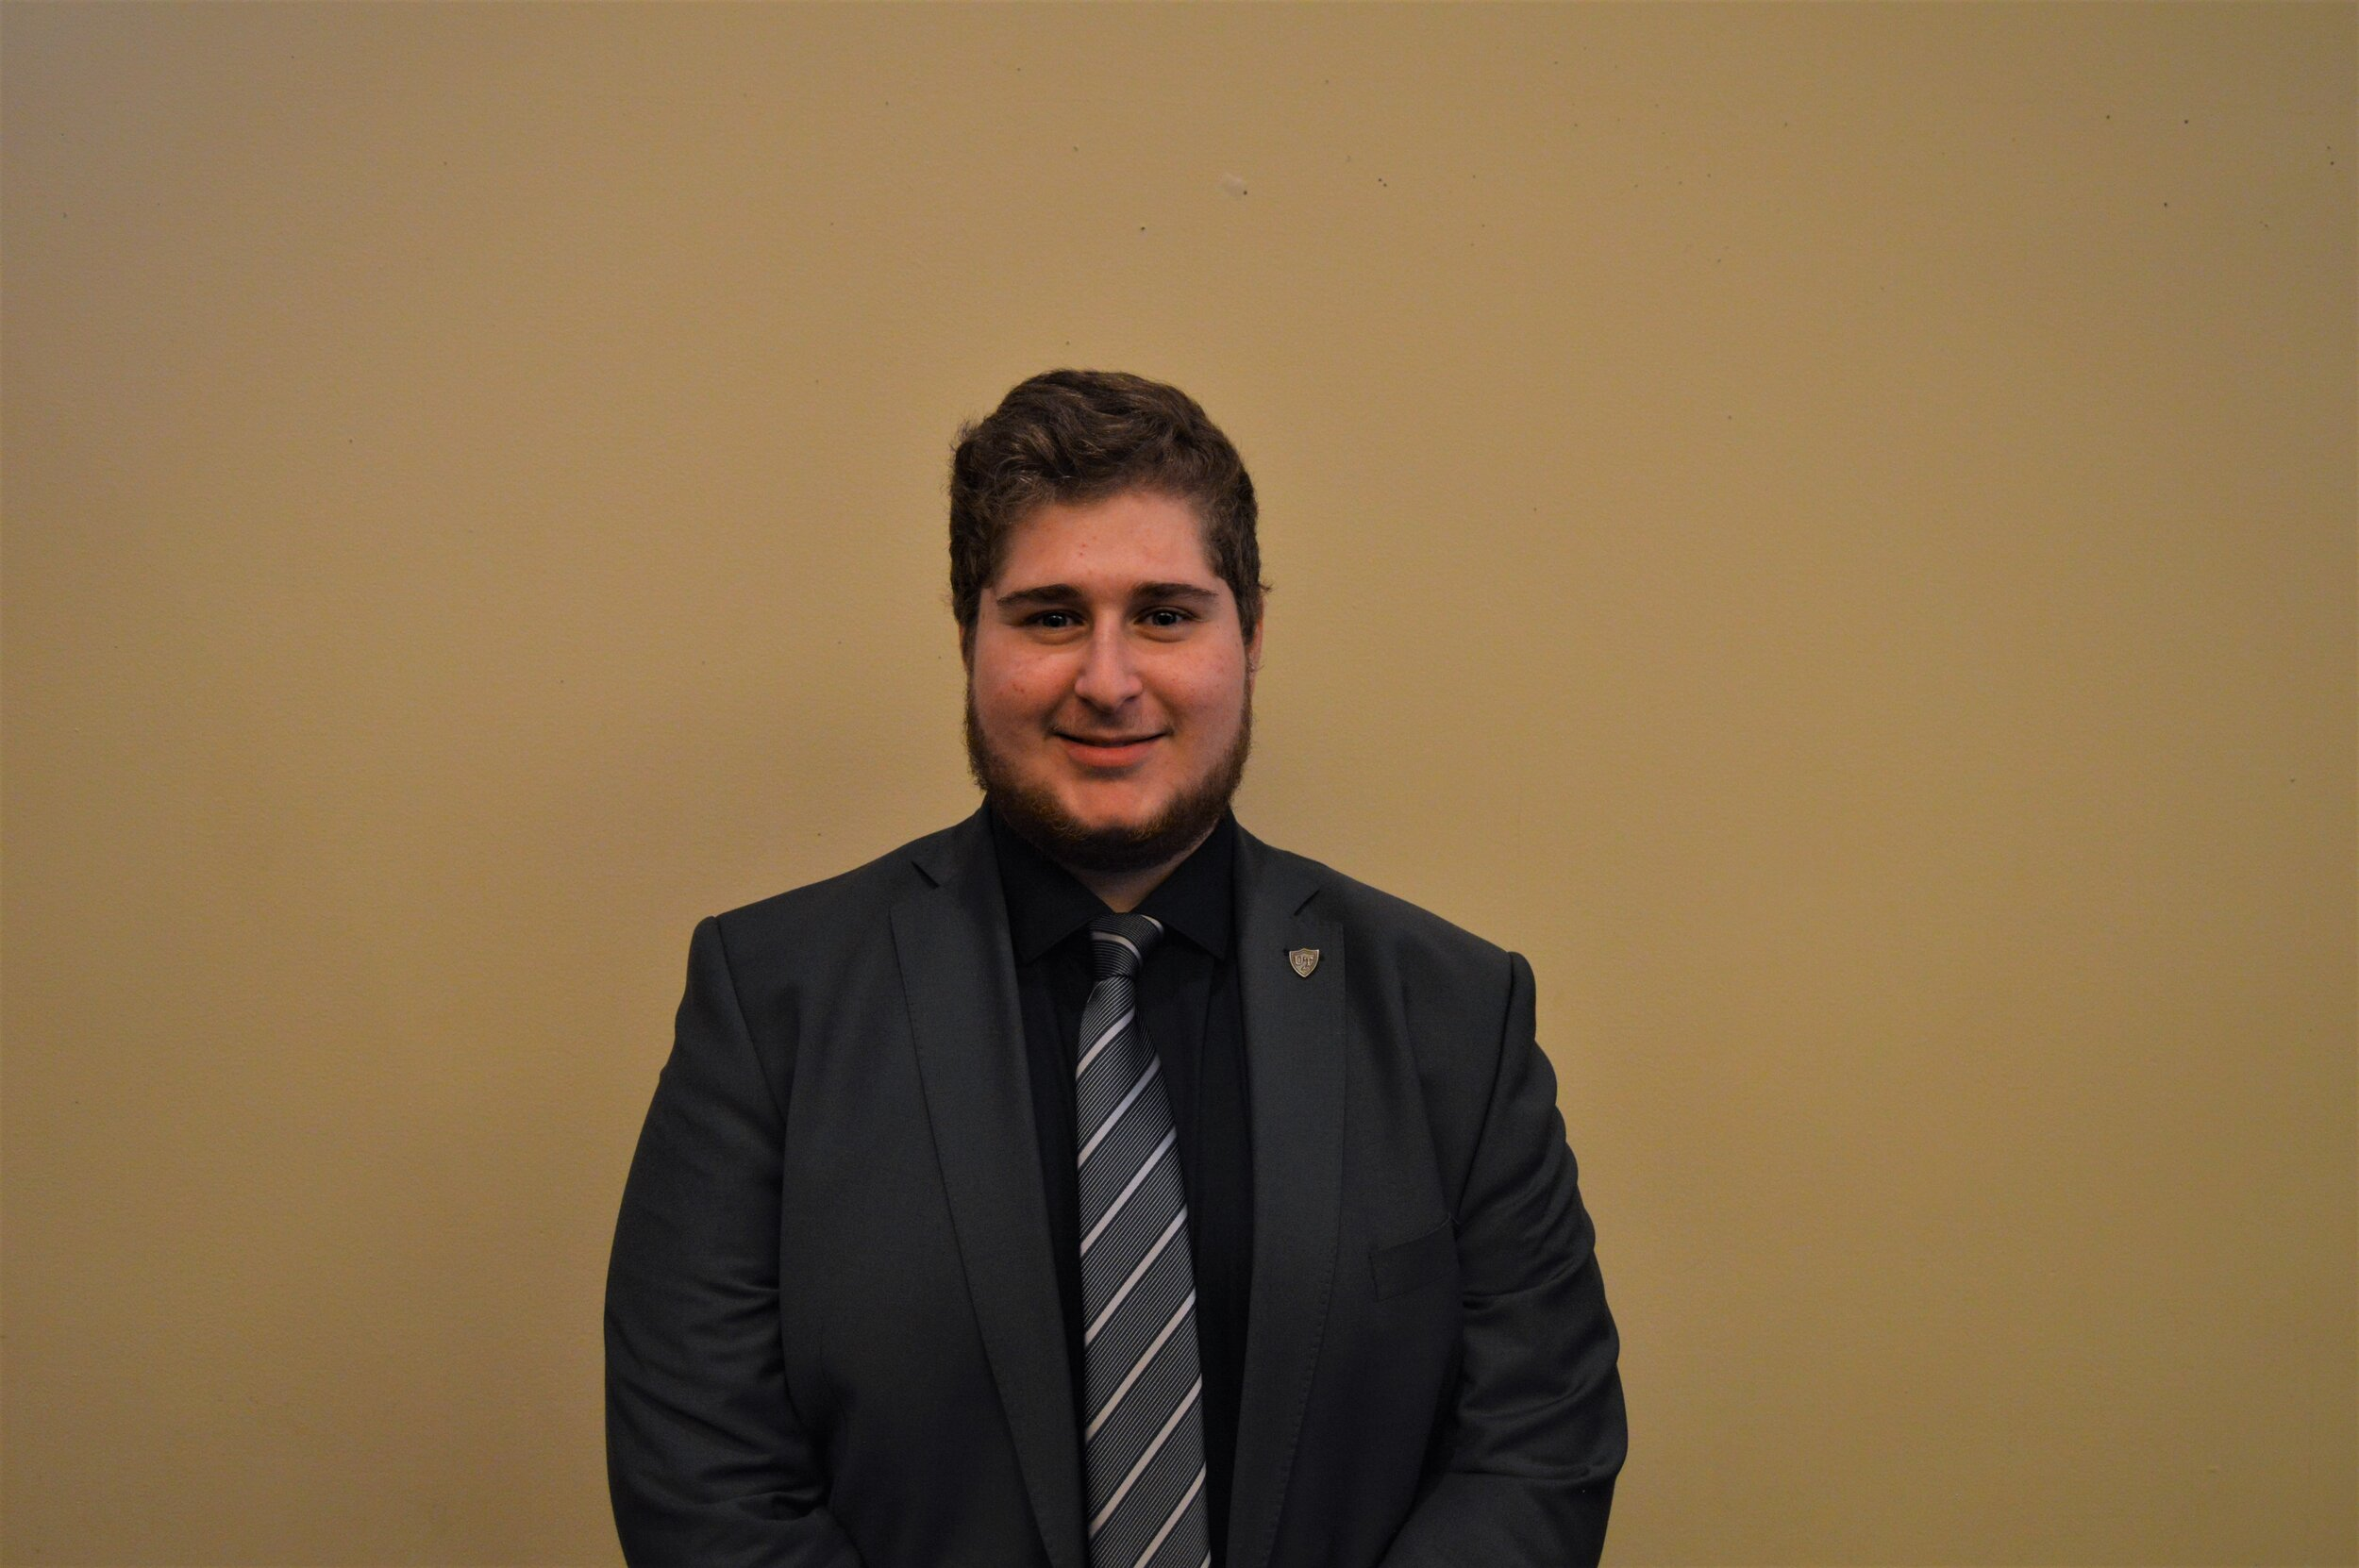 Volkan Dogan Alemdar - Class and Major: Information Systems 22UTSG Position: Appointed SenatorEmail: Volkan.alemdar@rockets.utoledo.eduBiography: I am a second year student at UT with ambitious plans for the future. One plan I am working on right now is establishing a network between Aramark and an International Food Wholesaler to introduce healthier food options to the meal ecosystem for the University.UTSG Committees: Campus Culture, Internal Affairs, External AffairsCampus Involvement: Kappa Delta Rho, AITP, CAPOn Campus Goals: Healthier food options and fresh water dispensaries.Favorite Color: Green